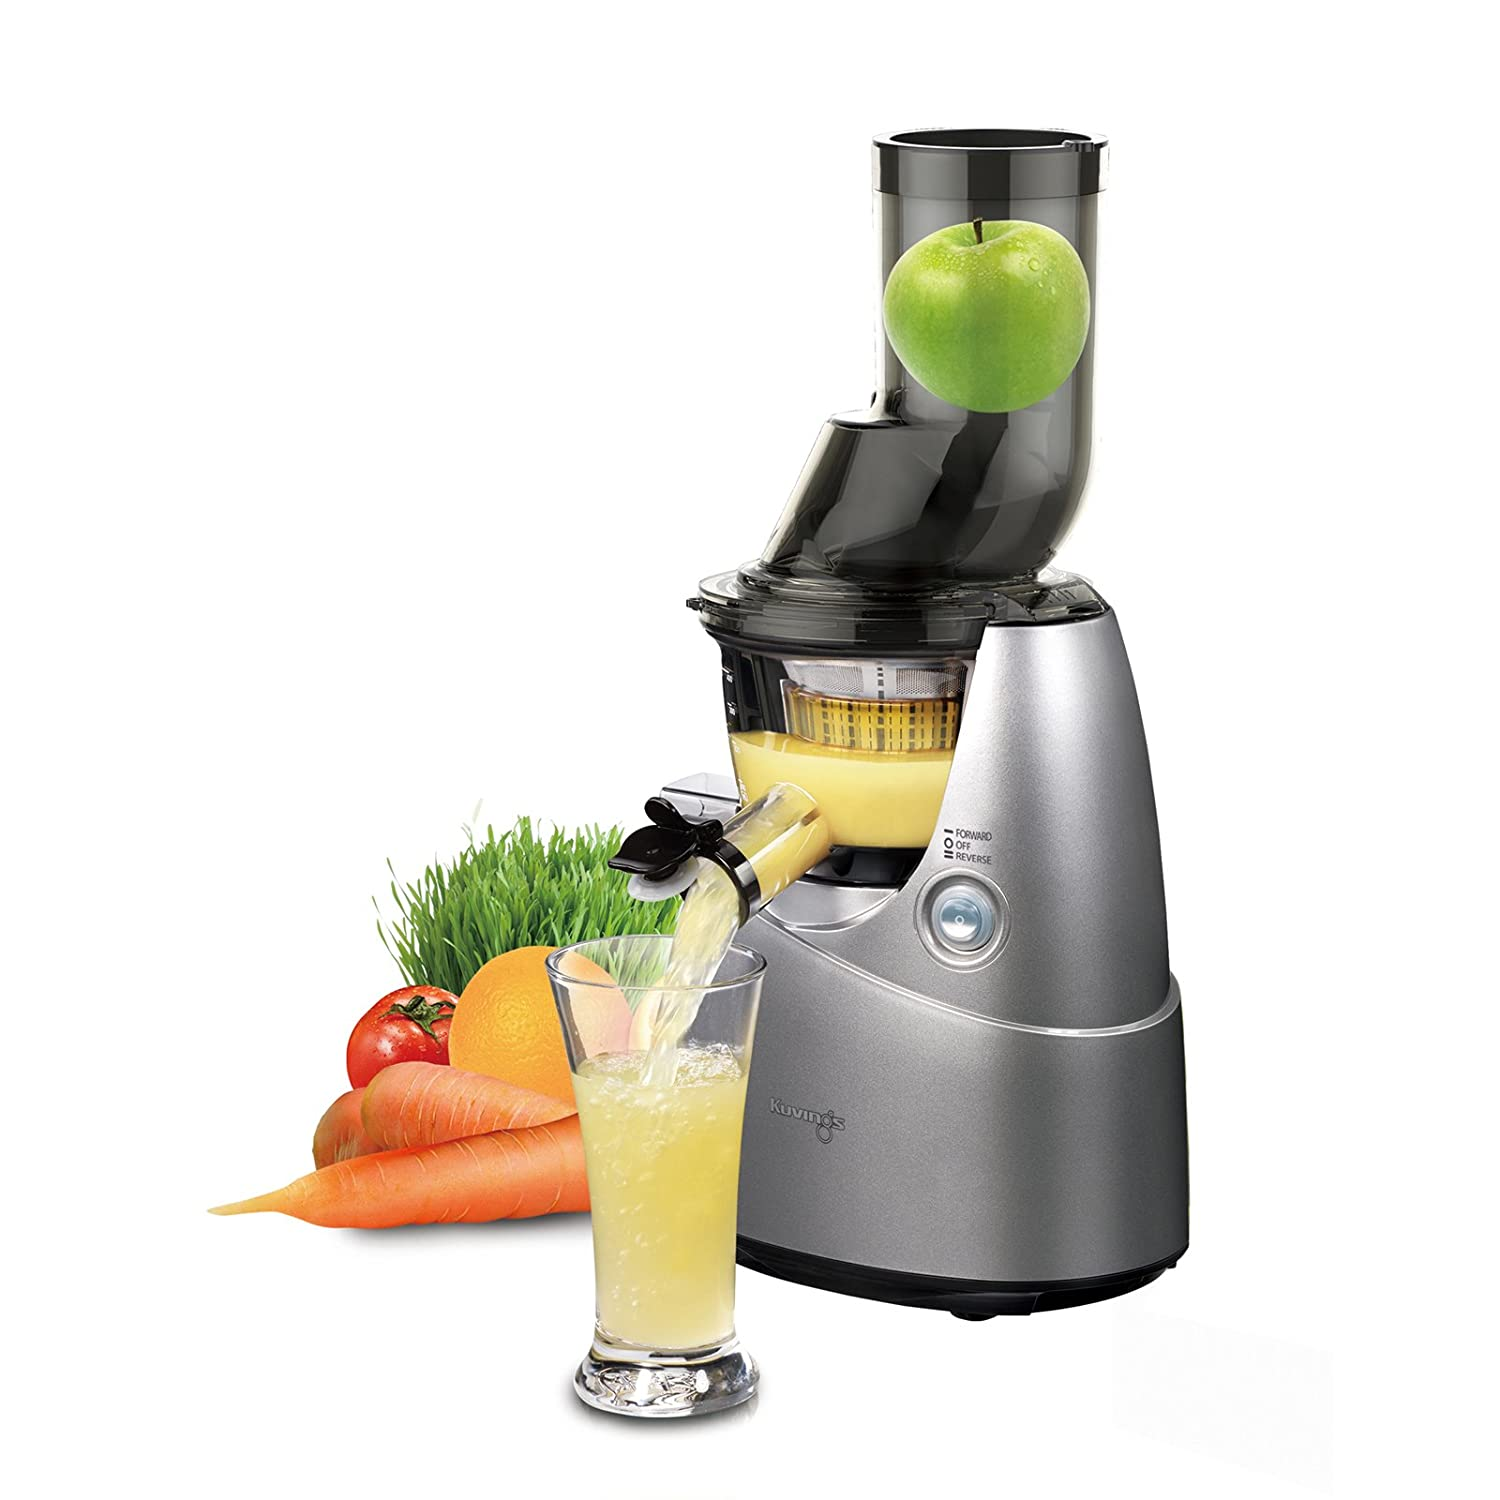 Extracteur Jus De Fruit The Best Juicers Of 2019: Reviewed And Compared